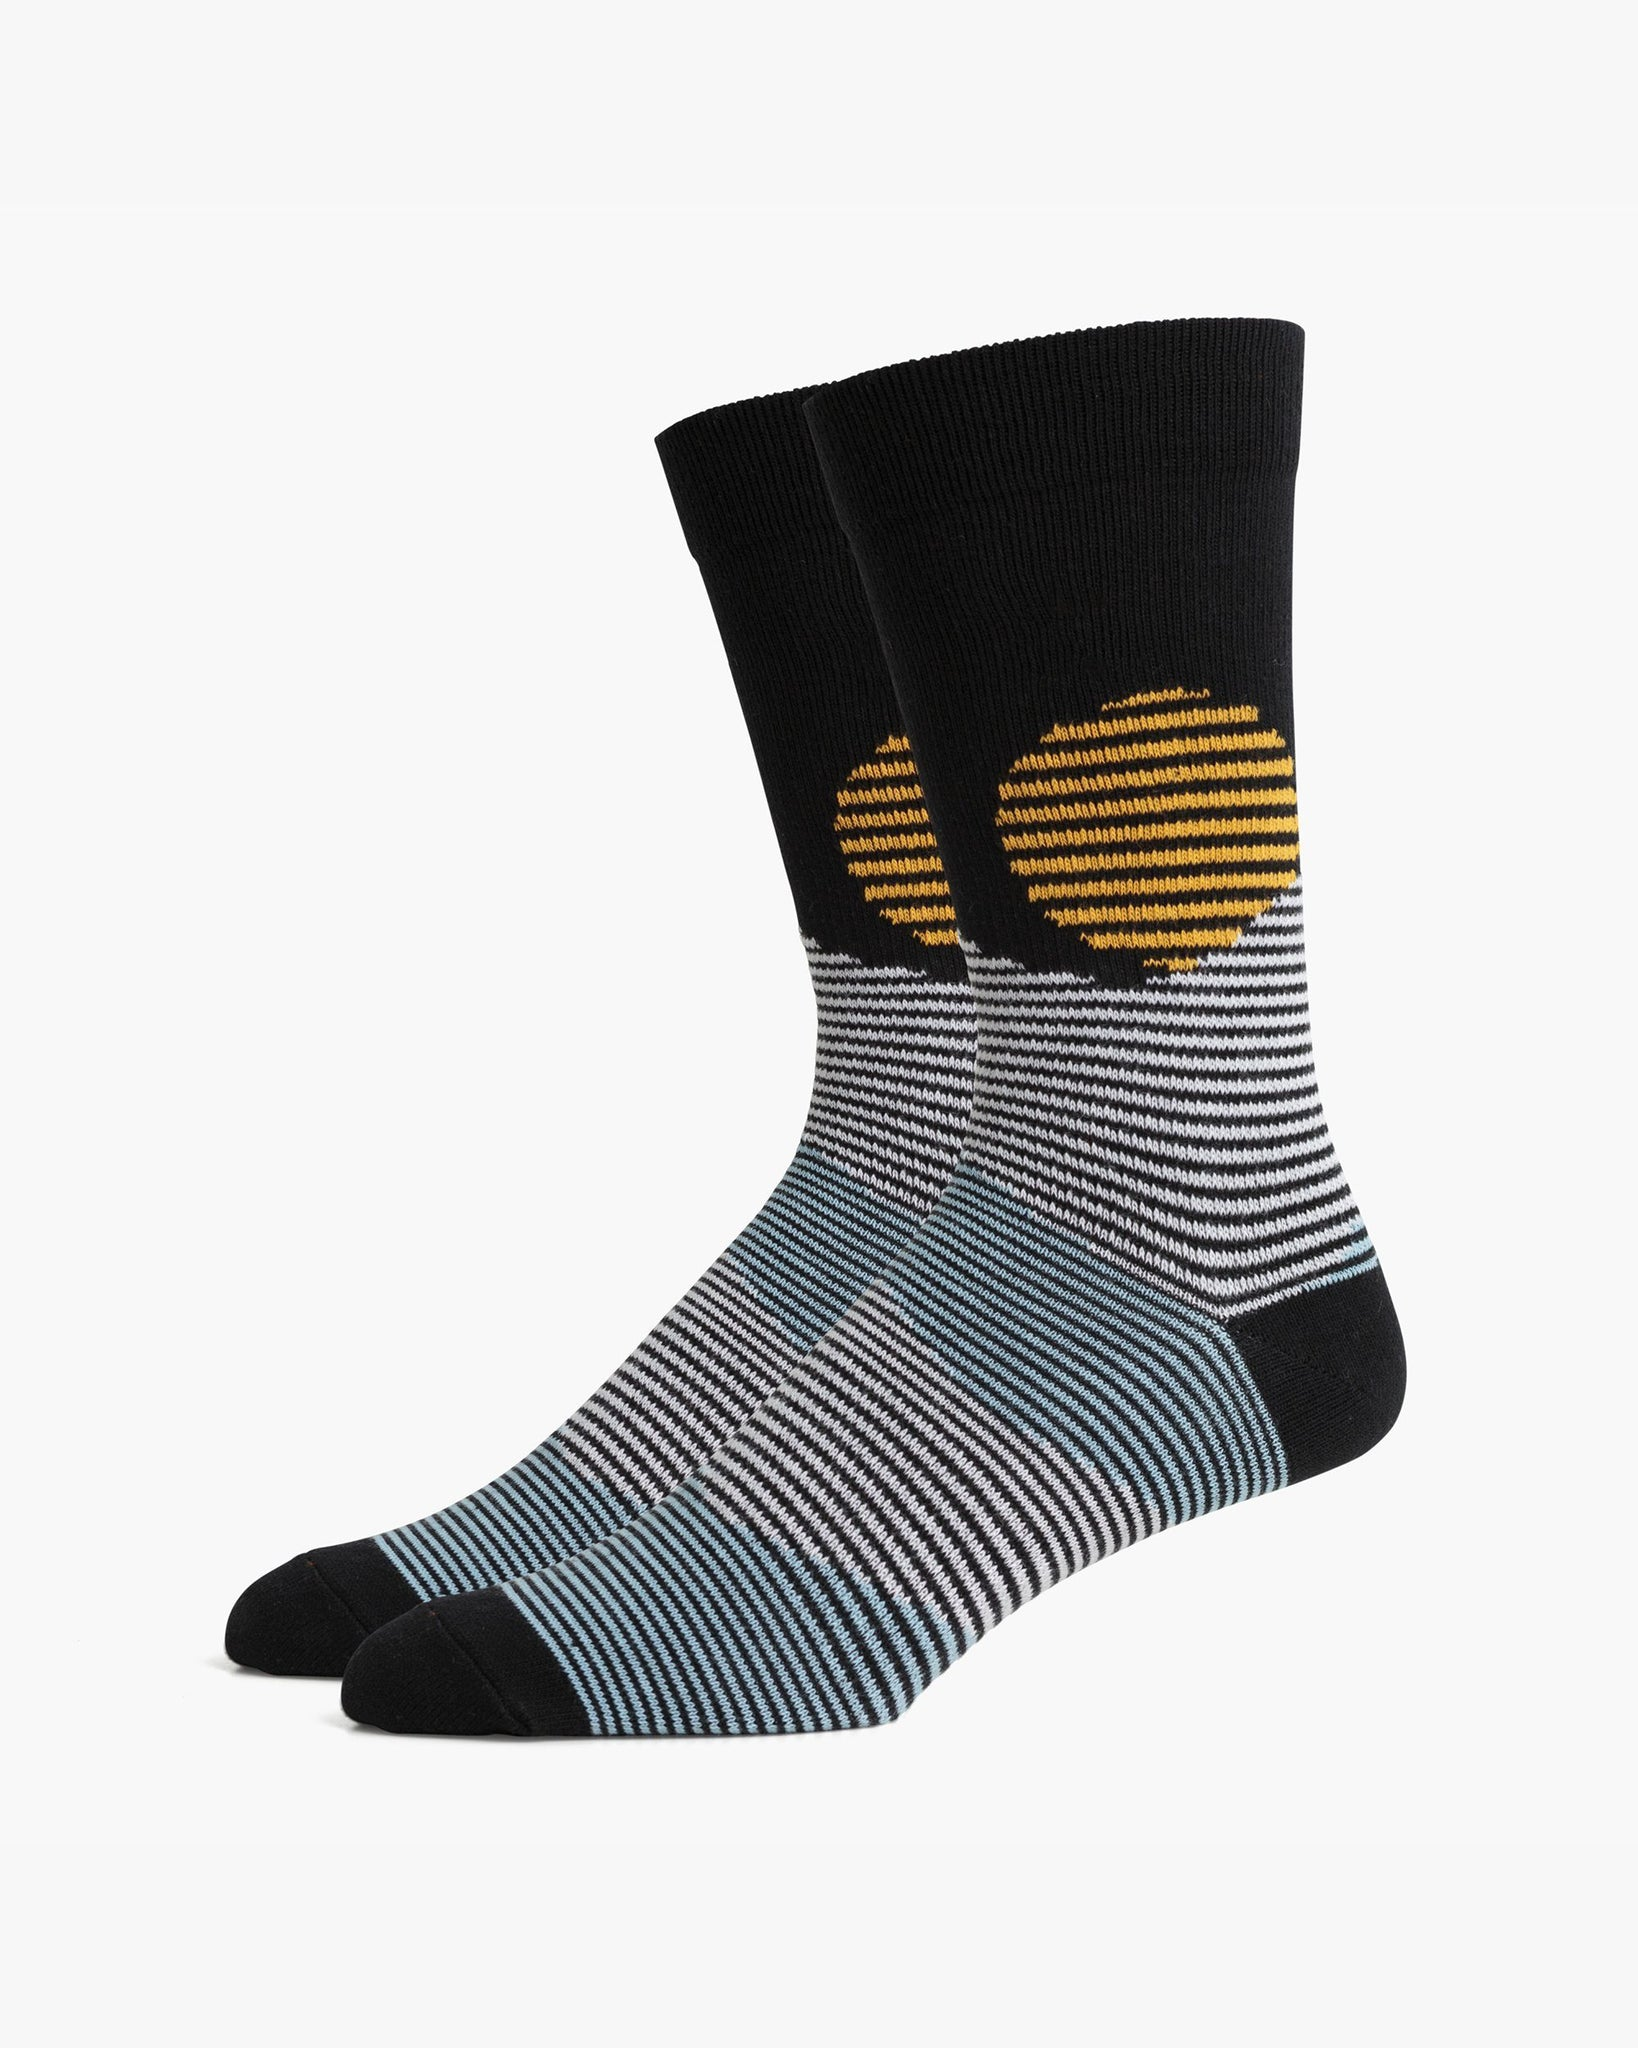 Men's Oakley Socks - Black & White